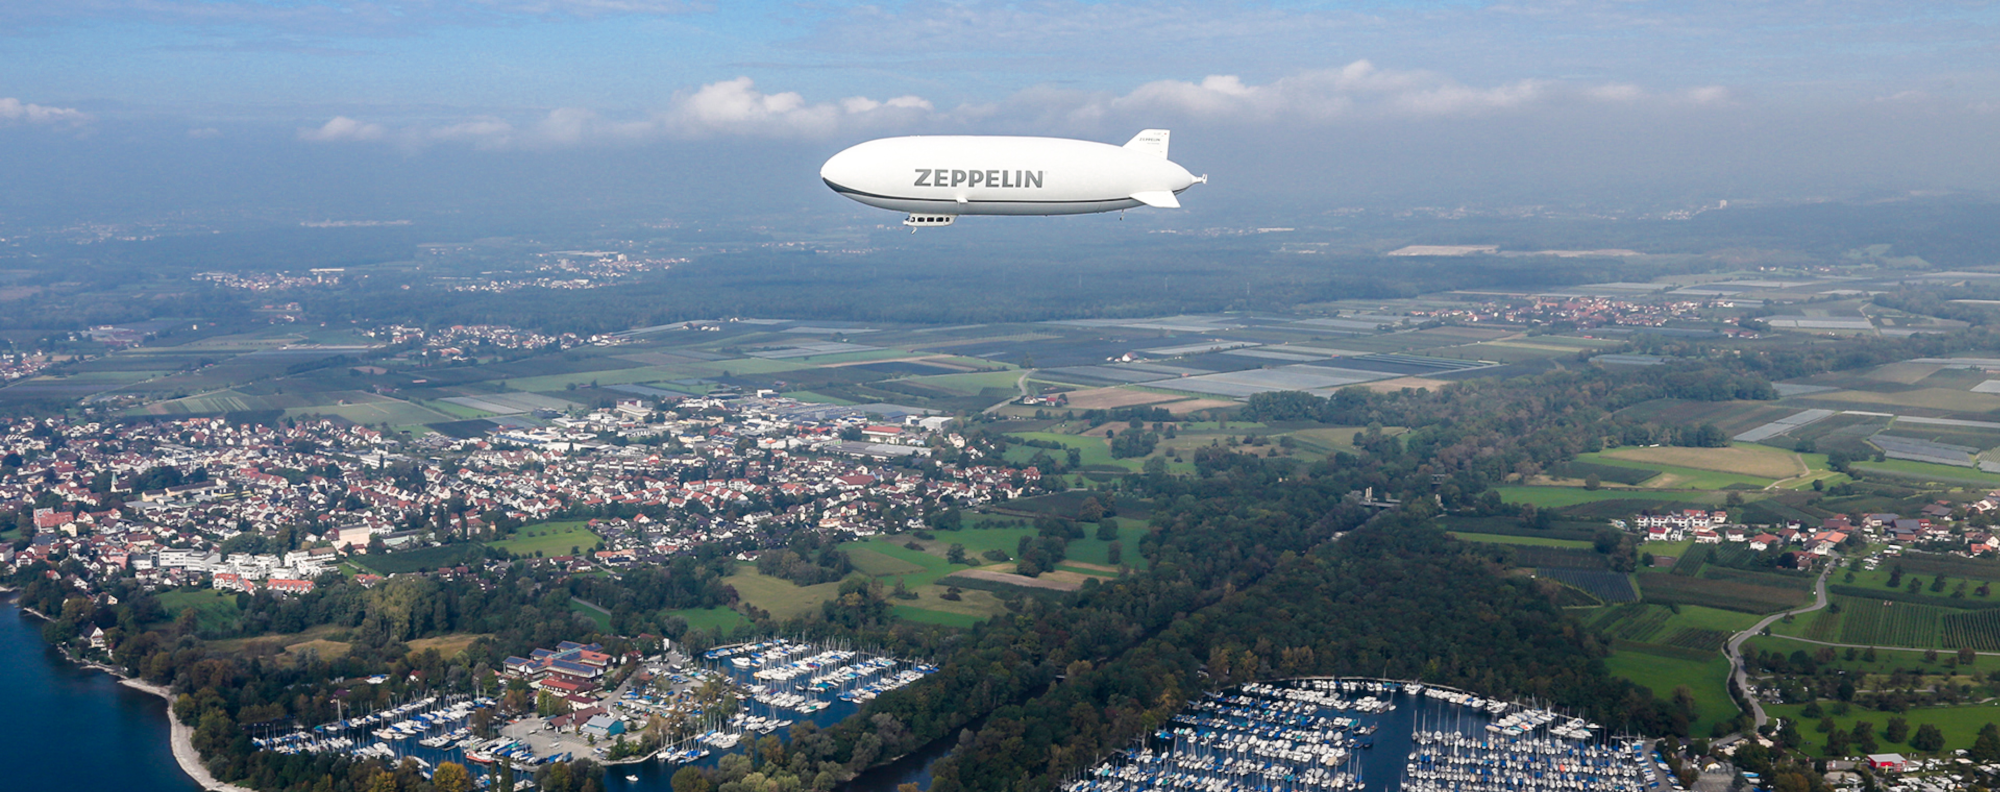 Blimps are back, with Zeppelin already running 12 routes across Europe and targeting the Chinese market